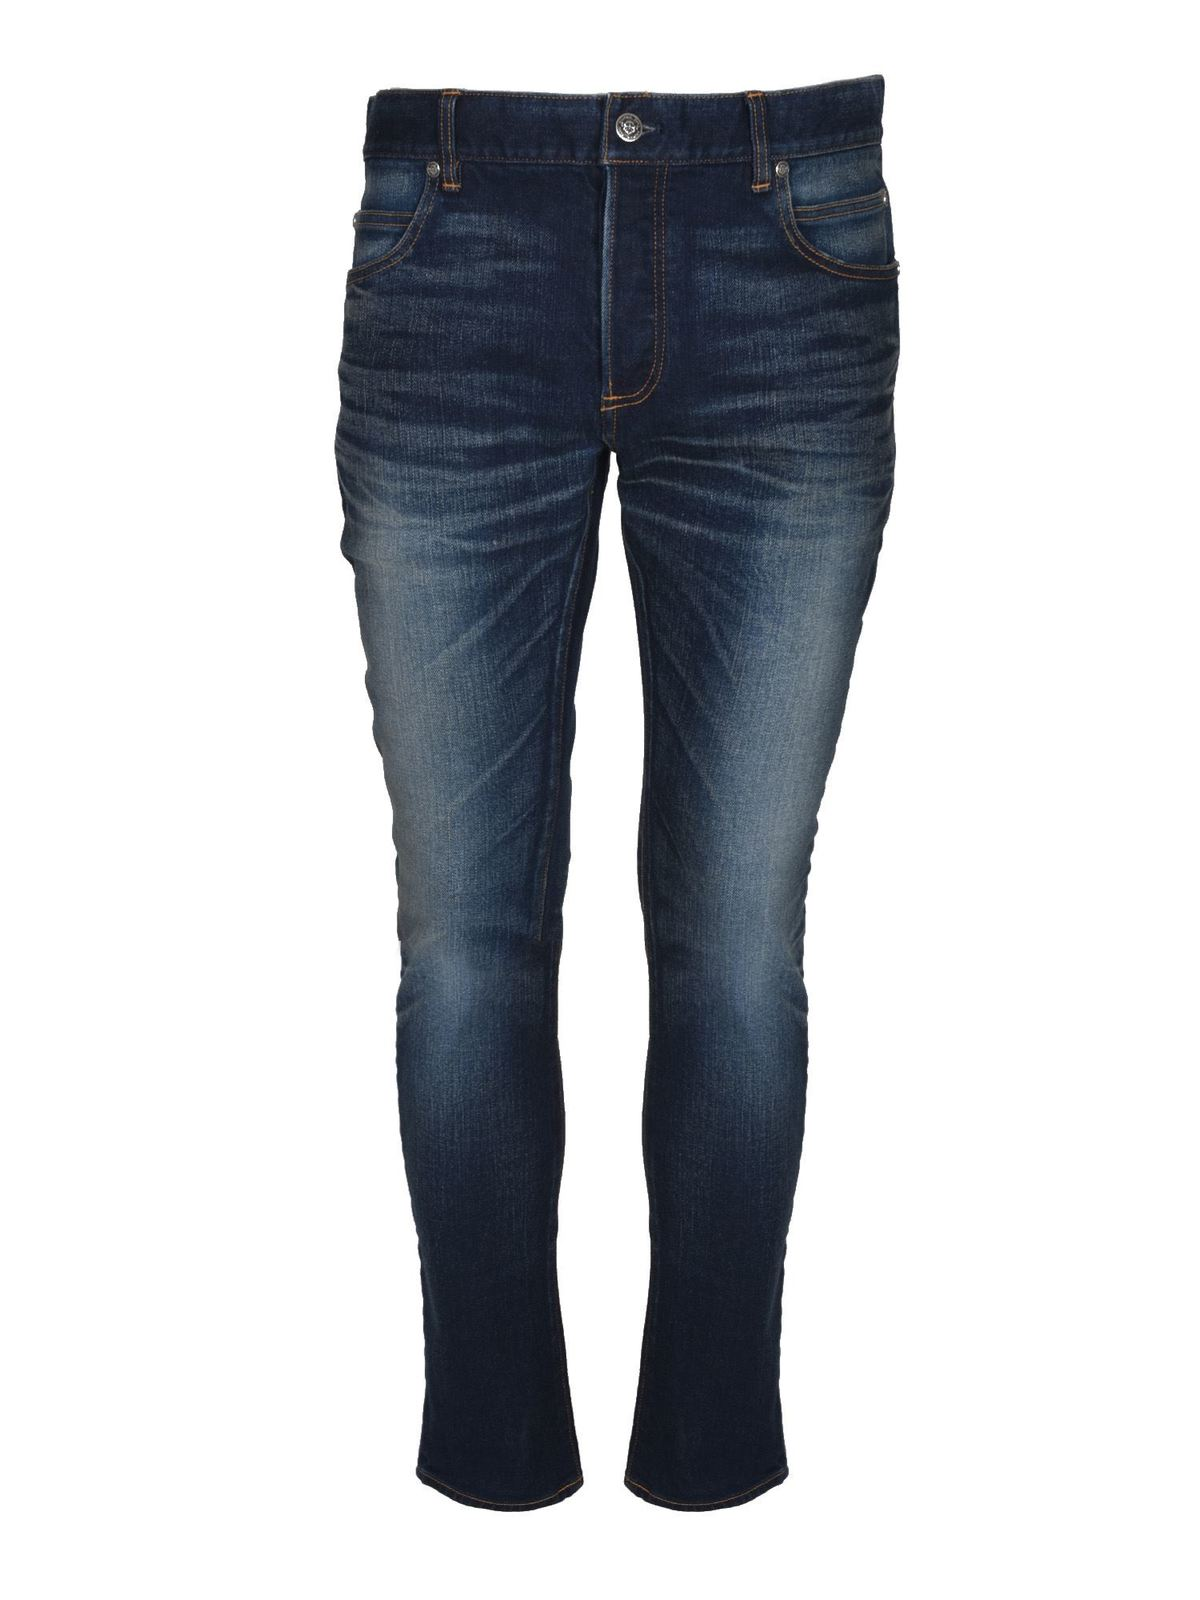 Balmain Cottons SKINNY JEANS IN BLUE